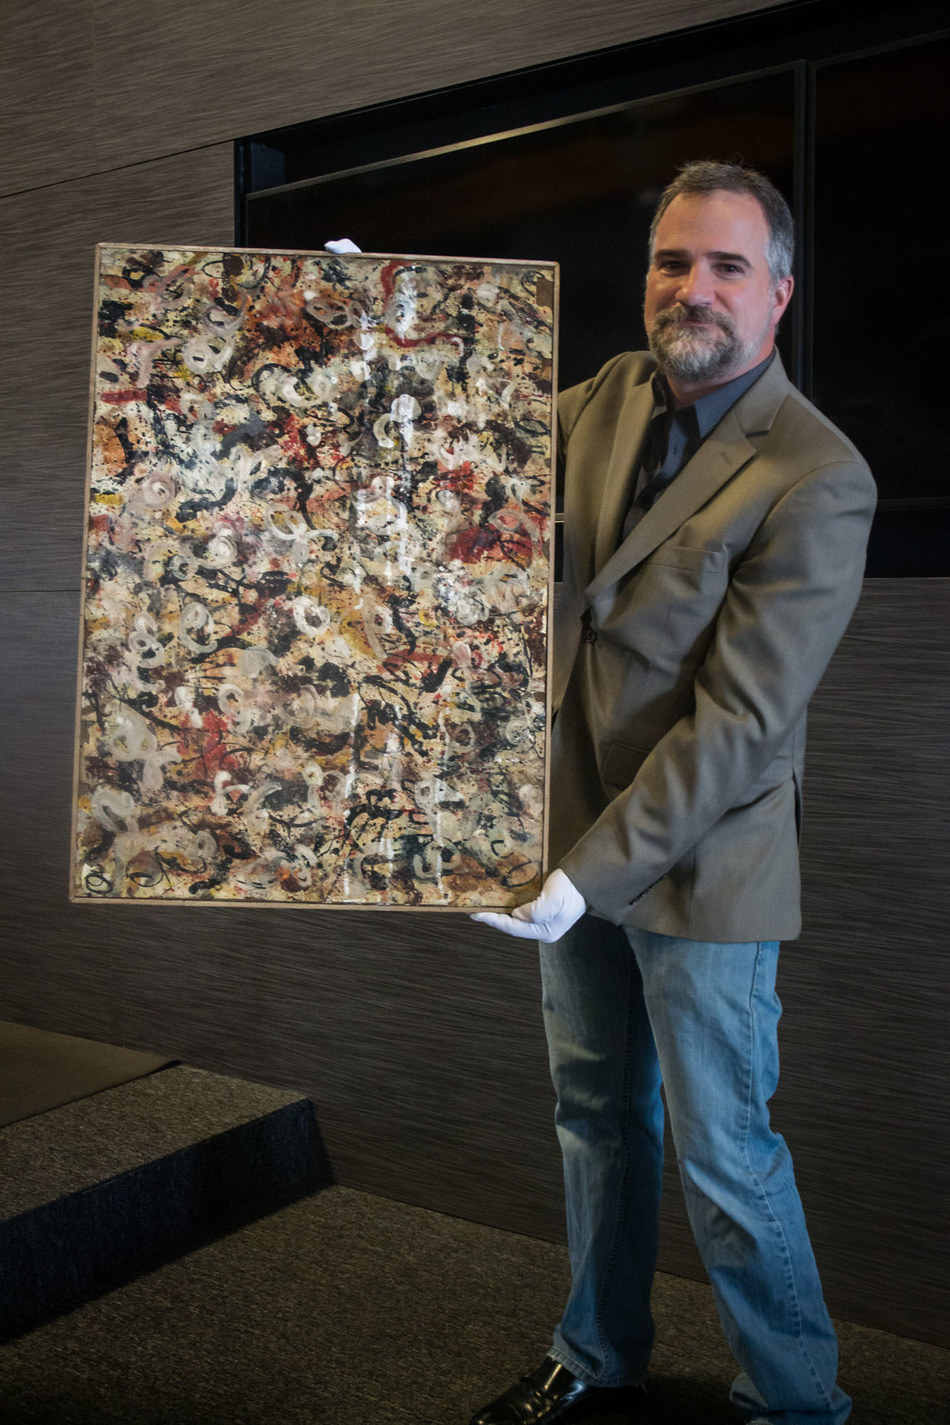 Auctioneer Josh Levine, owner and CEO of J. Levine Auction & Appraisal, holds a lost Jackson Pollock gouache painting that will be auctioned on June 20 in Scottsdale, Arizona. www.jlevines.com Photo credit: Sami Gill